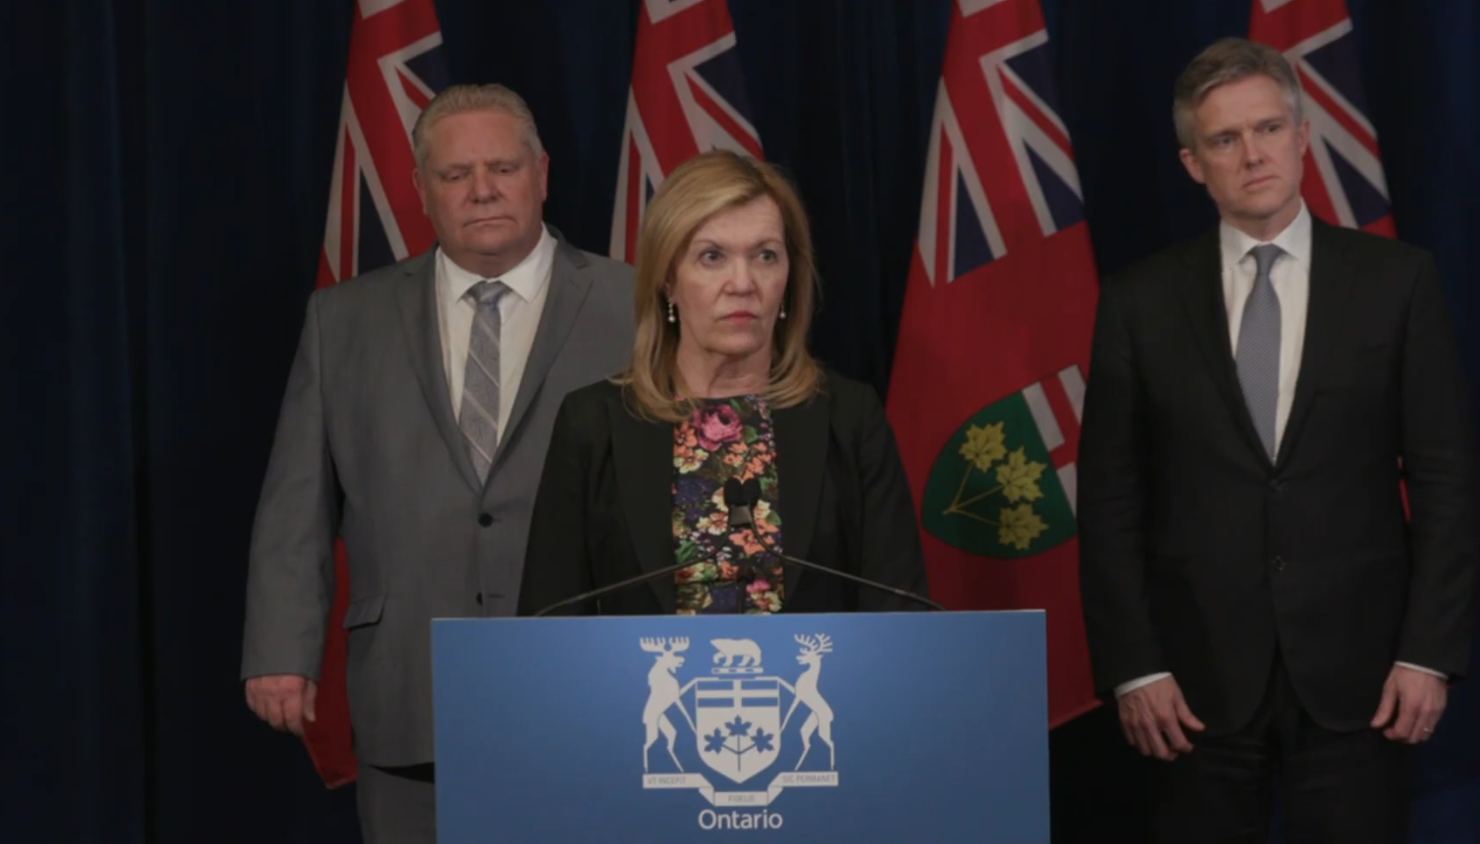 Ontario Struggling To Deal With Covid 19 Testing Backlog National Observer